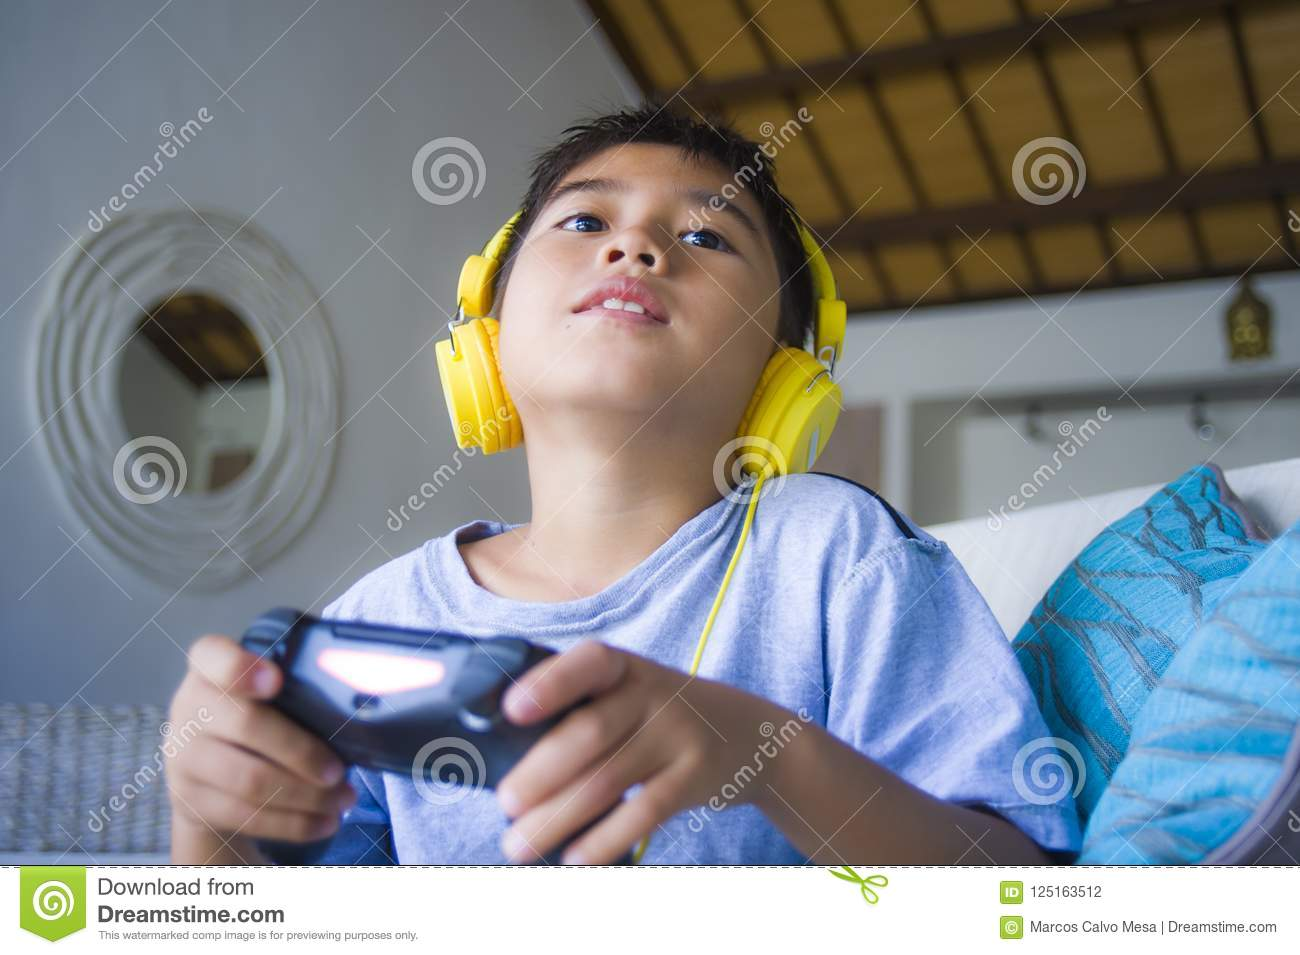 Latin Young Boy Excited And Happy Playing Video Game Online